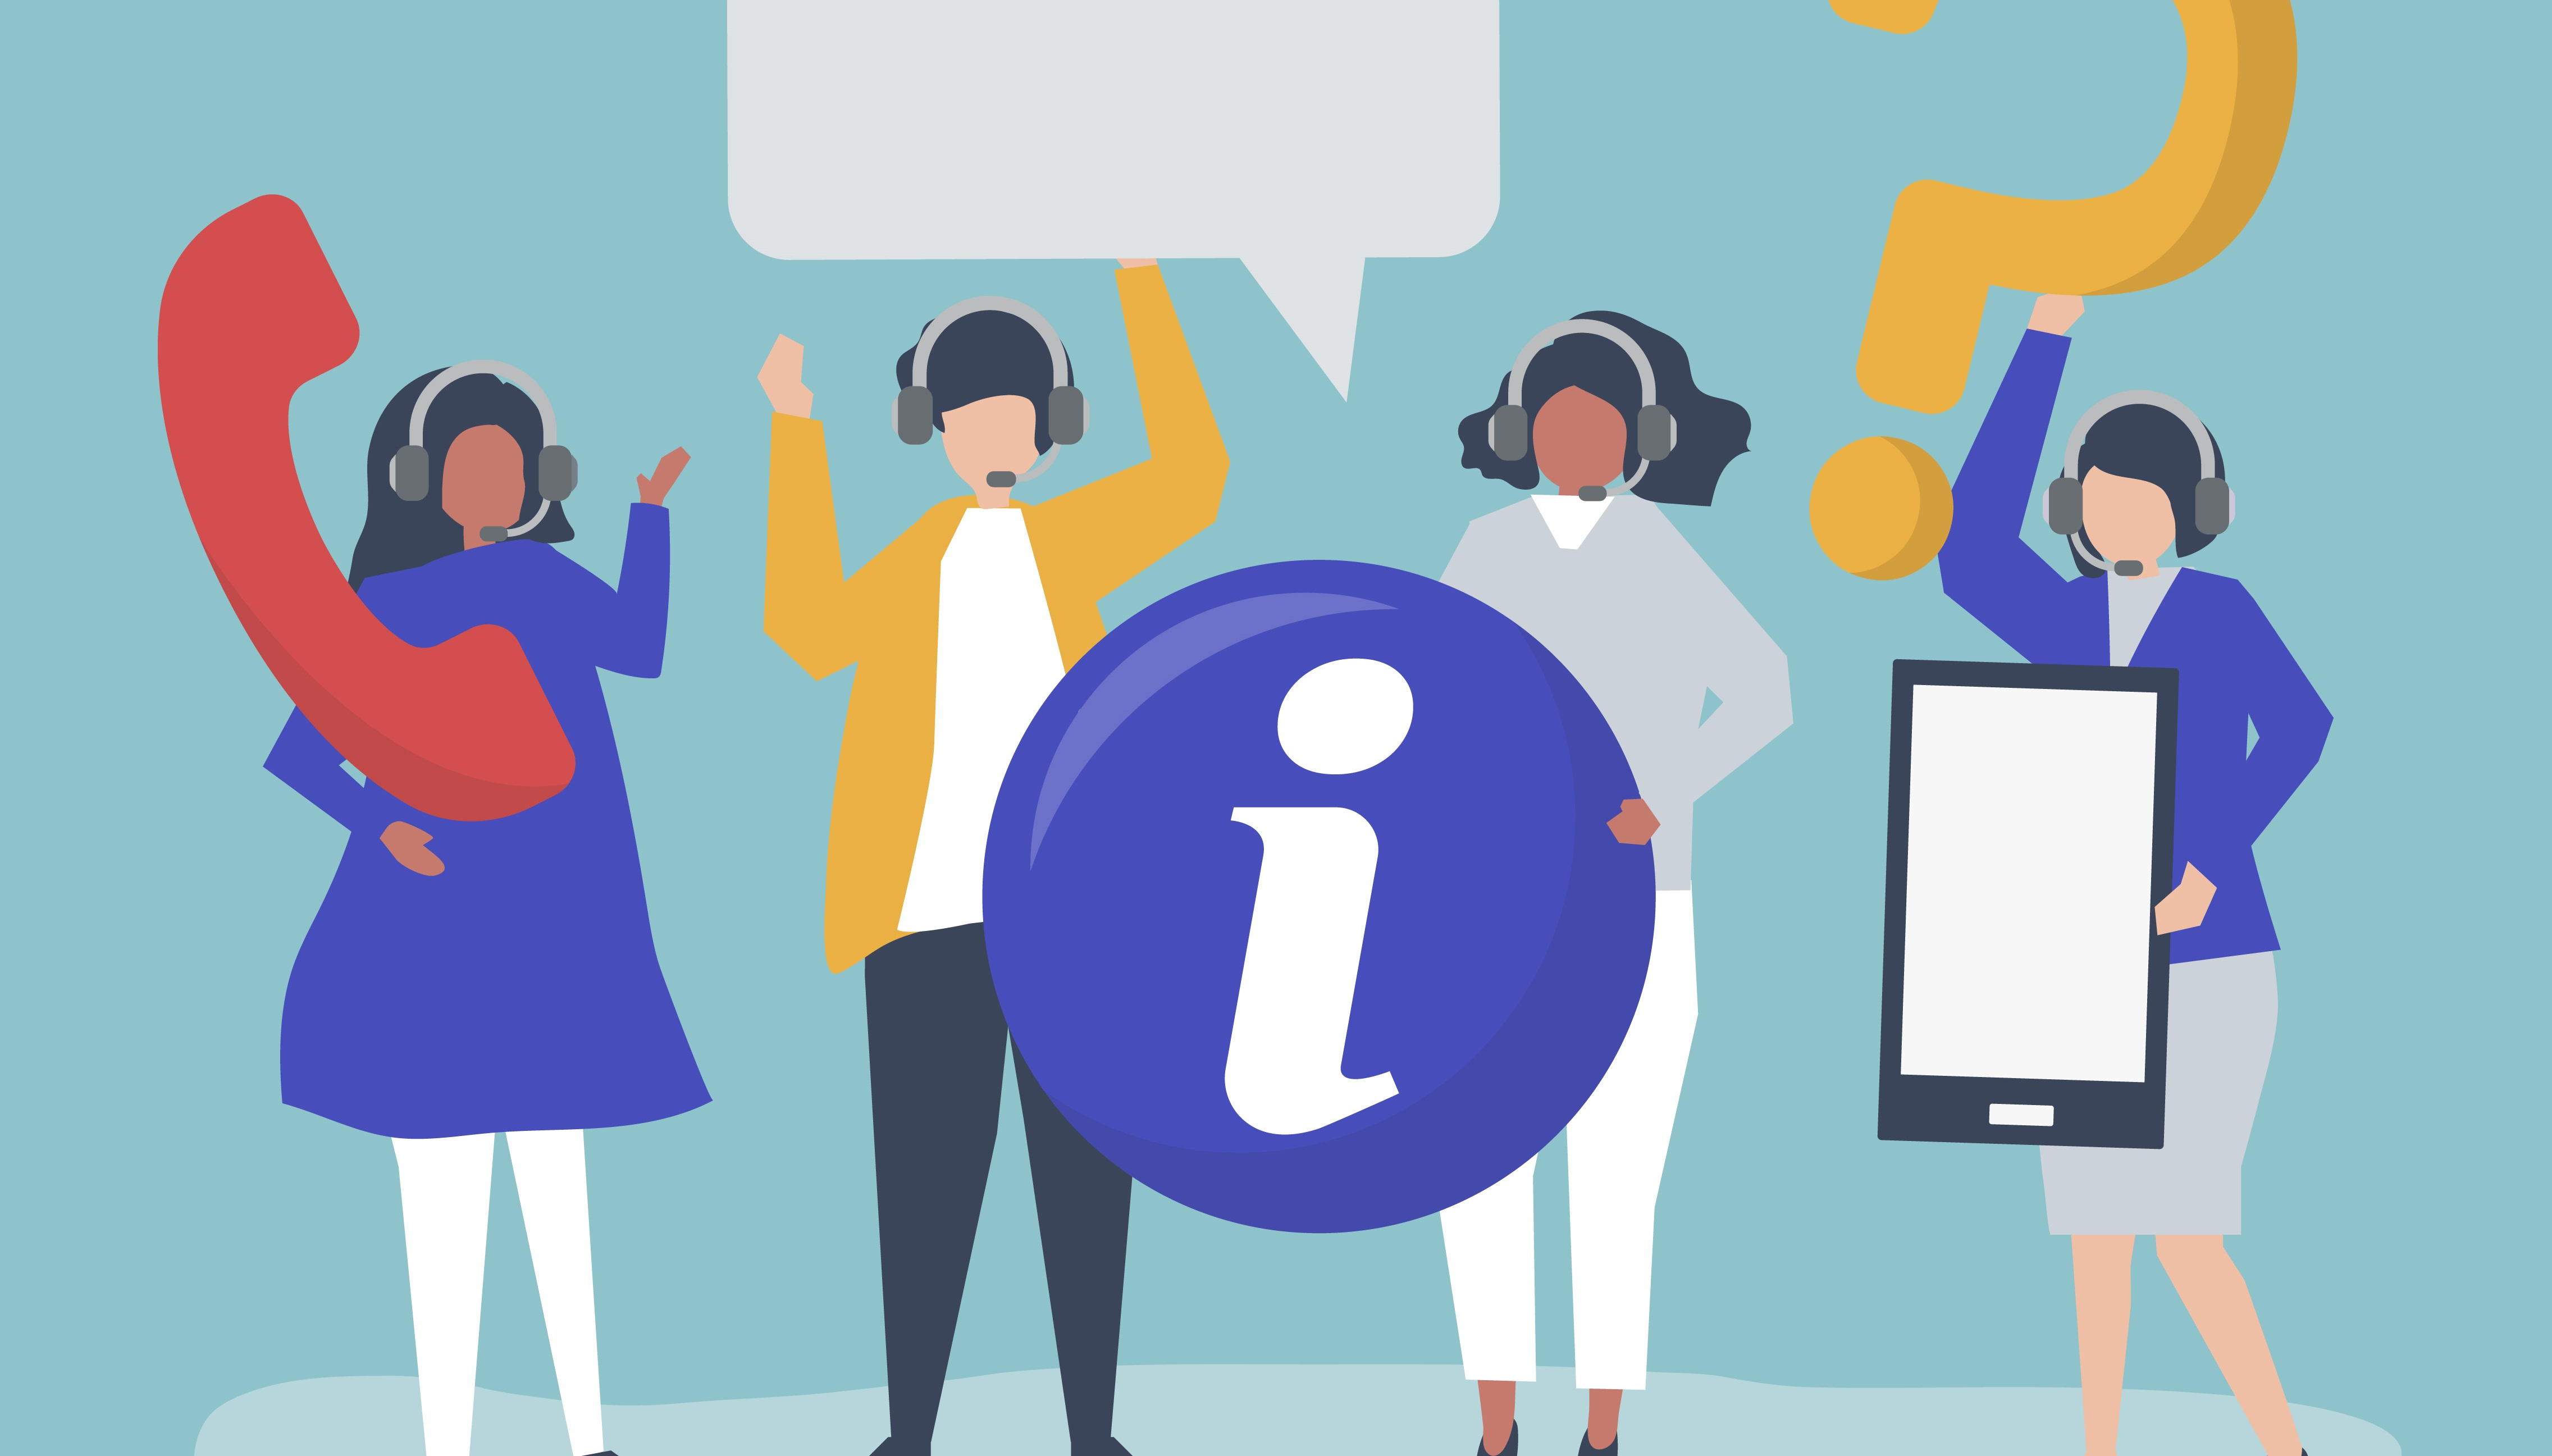 Call center operators carrying communication icons